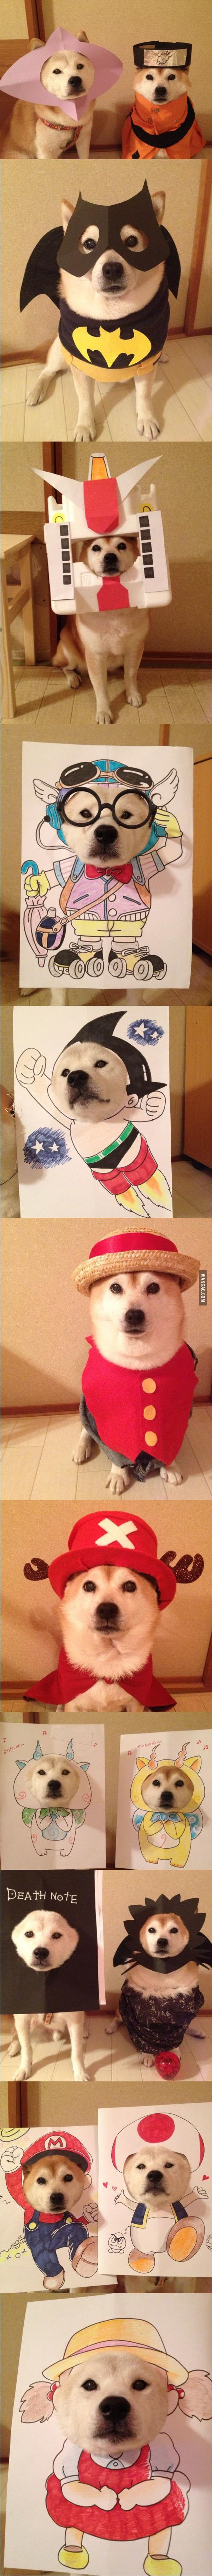 11 Adorable Shiba Cosplays That Are Much Cute, Very Wow